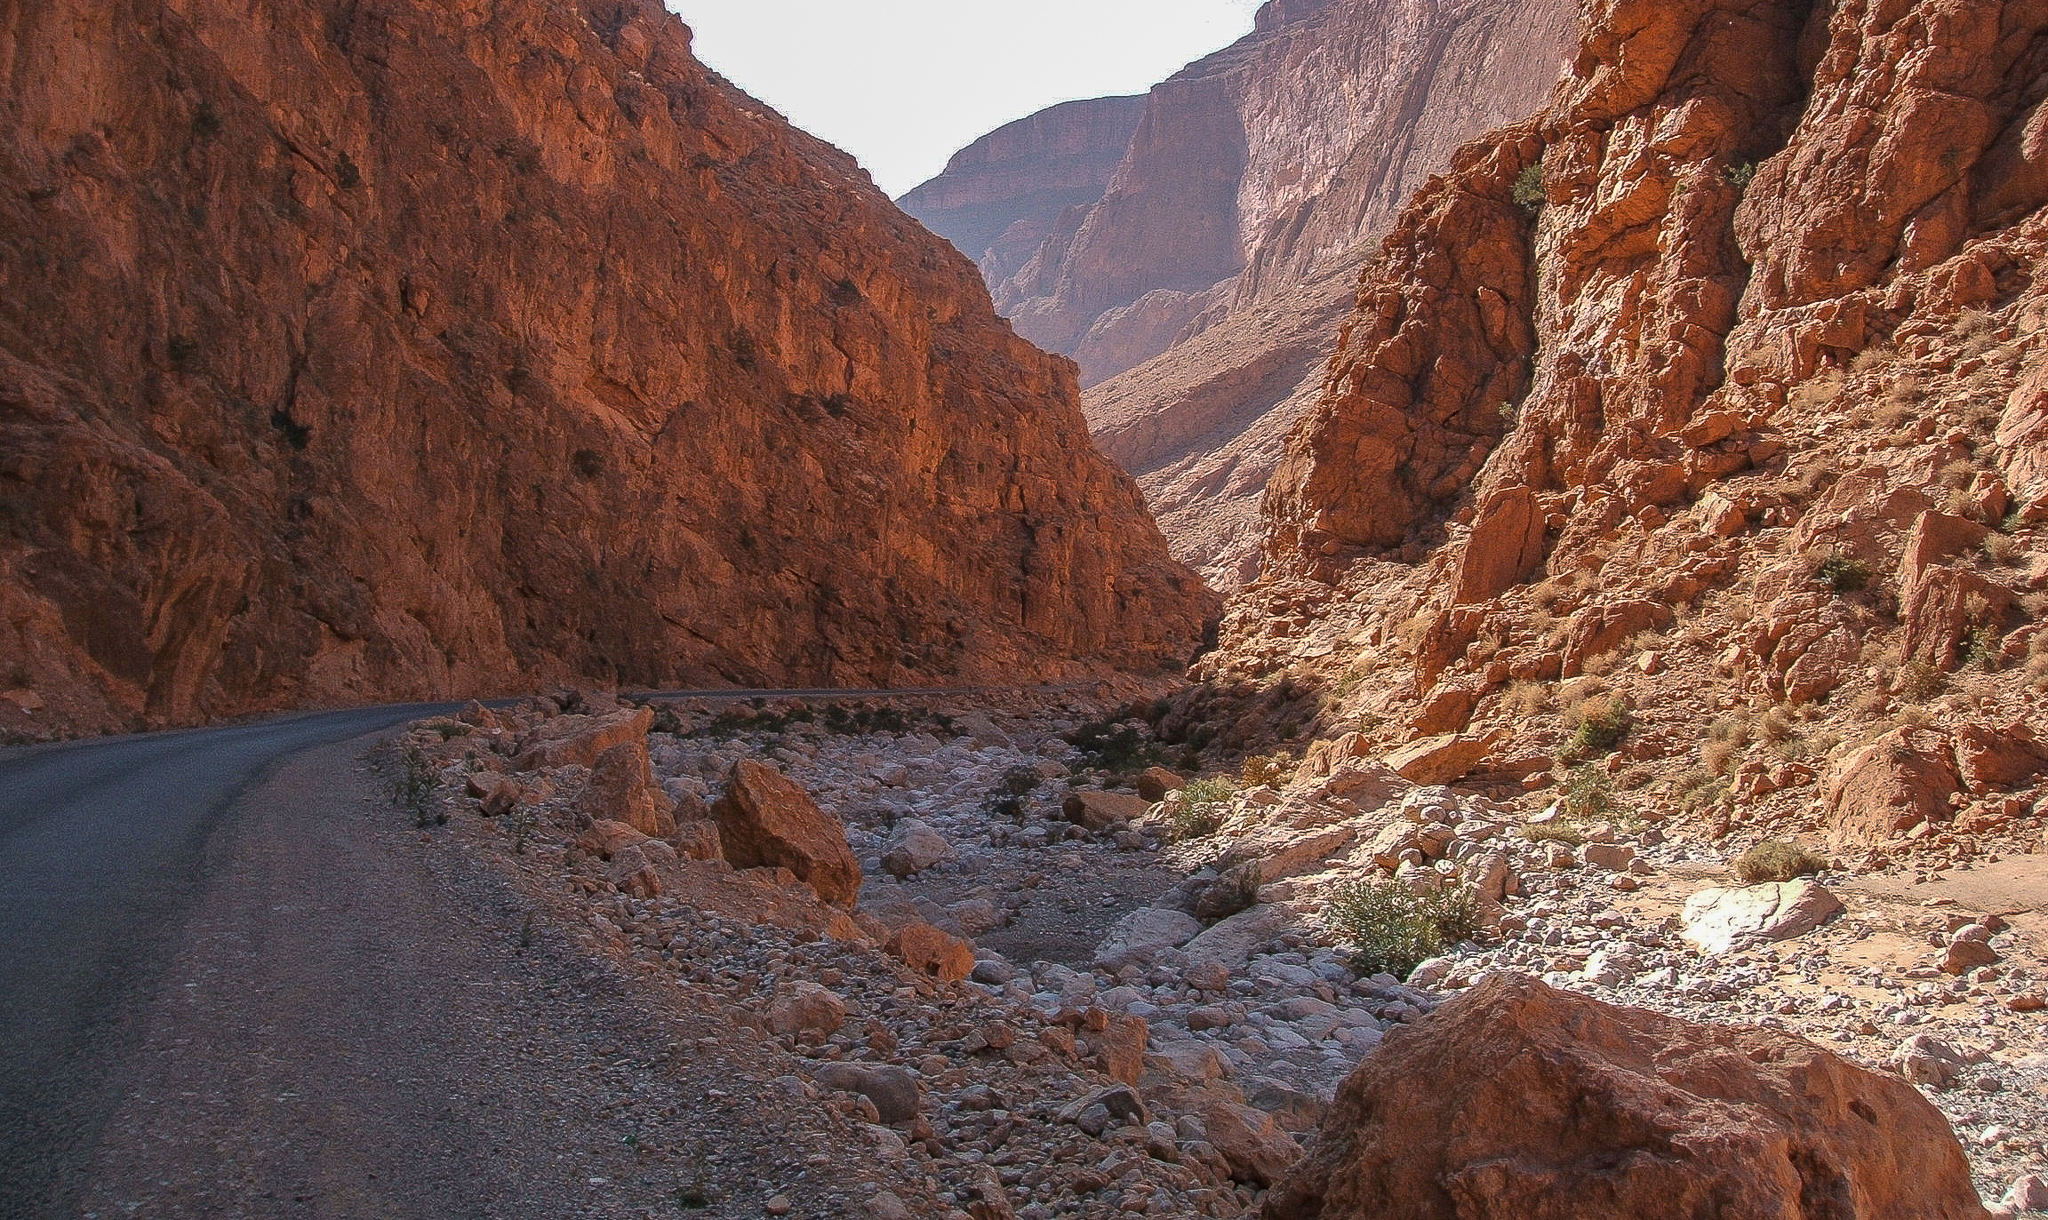 THE ROAD CUTS THROUGH THE CANYONS IN THE HIGH ATLAS MOUNTAINS.